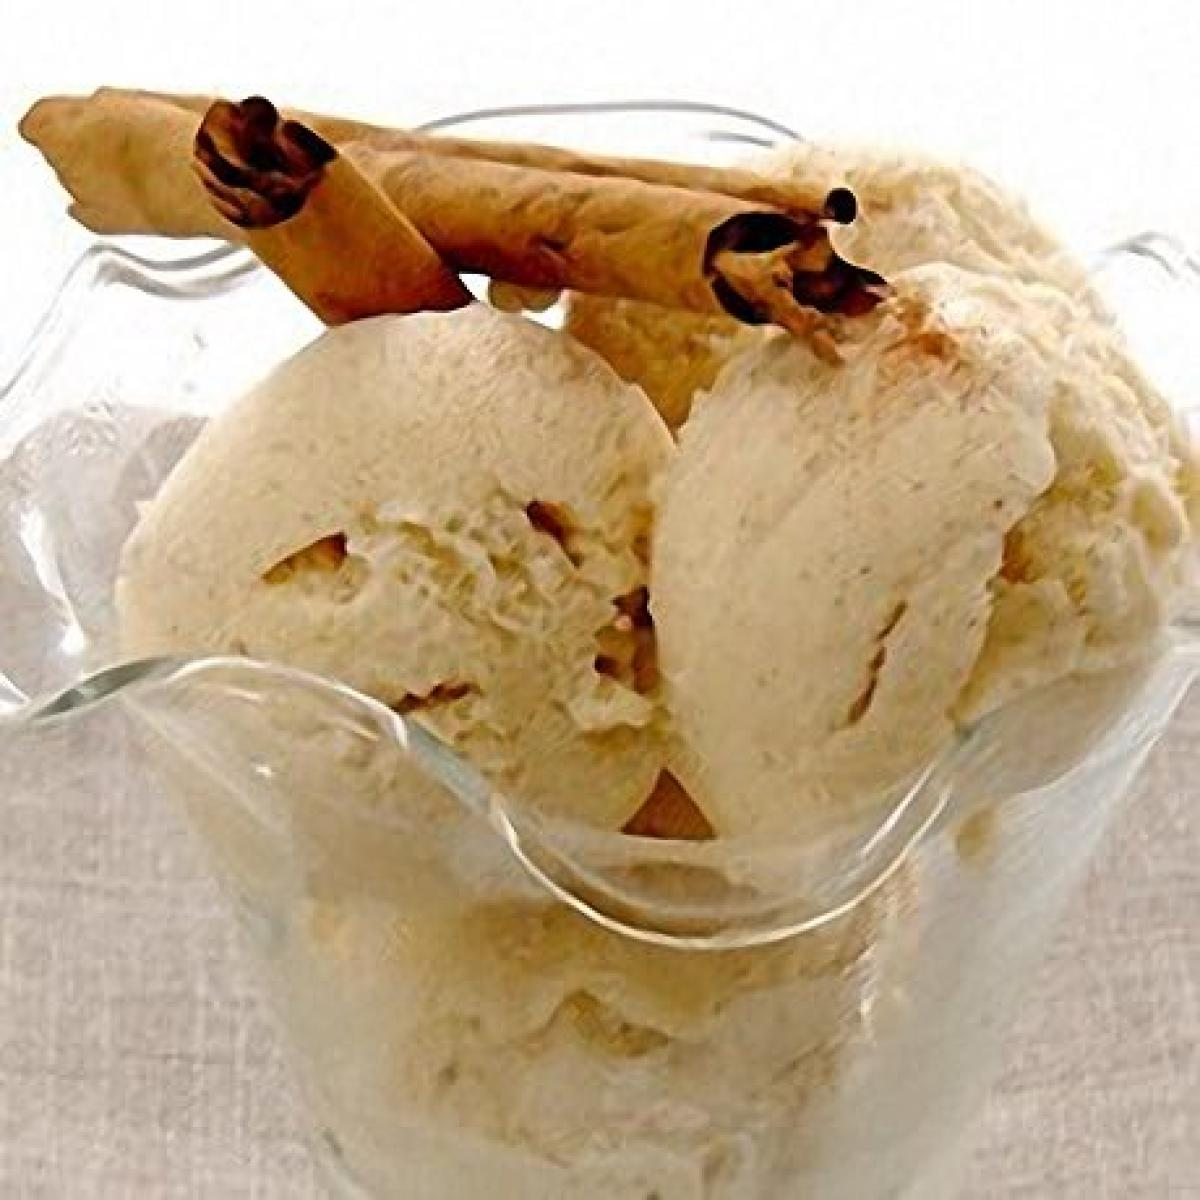 A picture of Delia's Cinnamon Ice Cream recipe